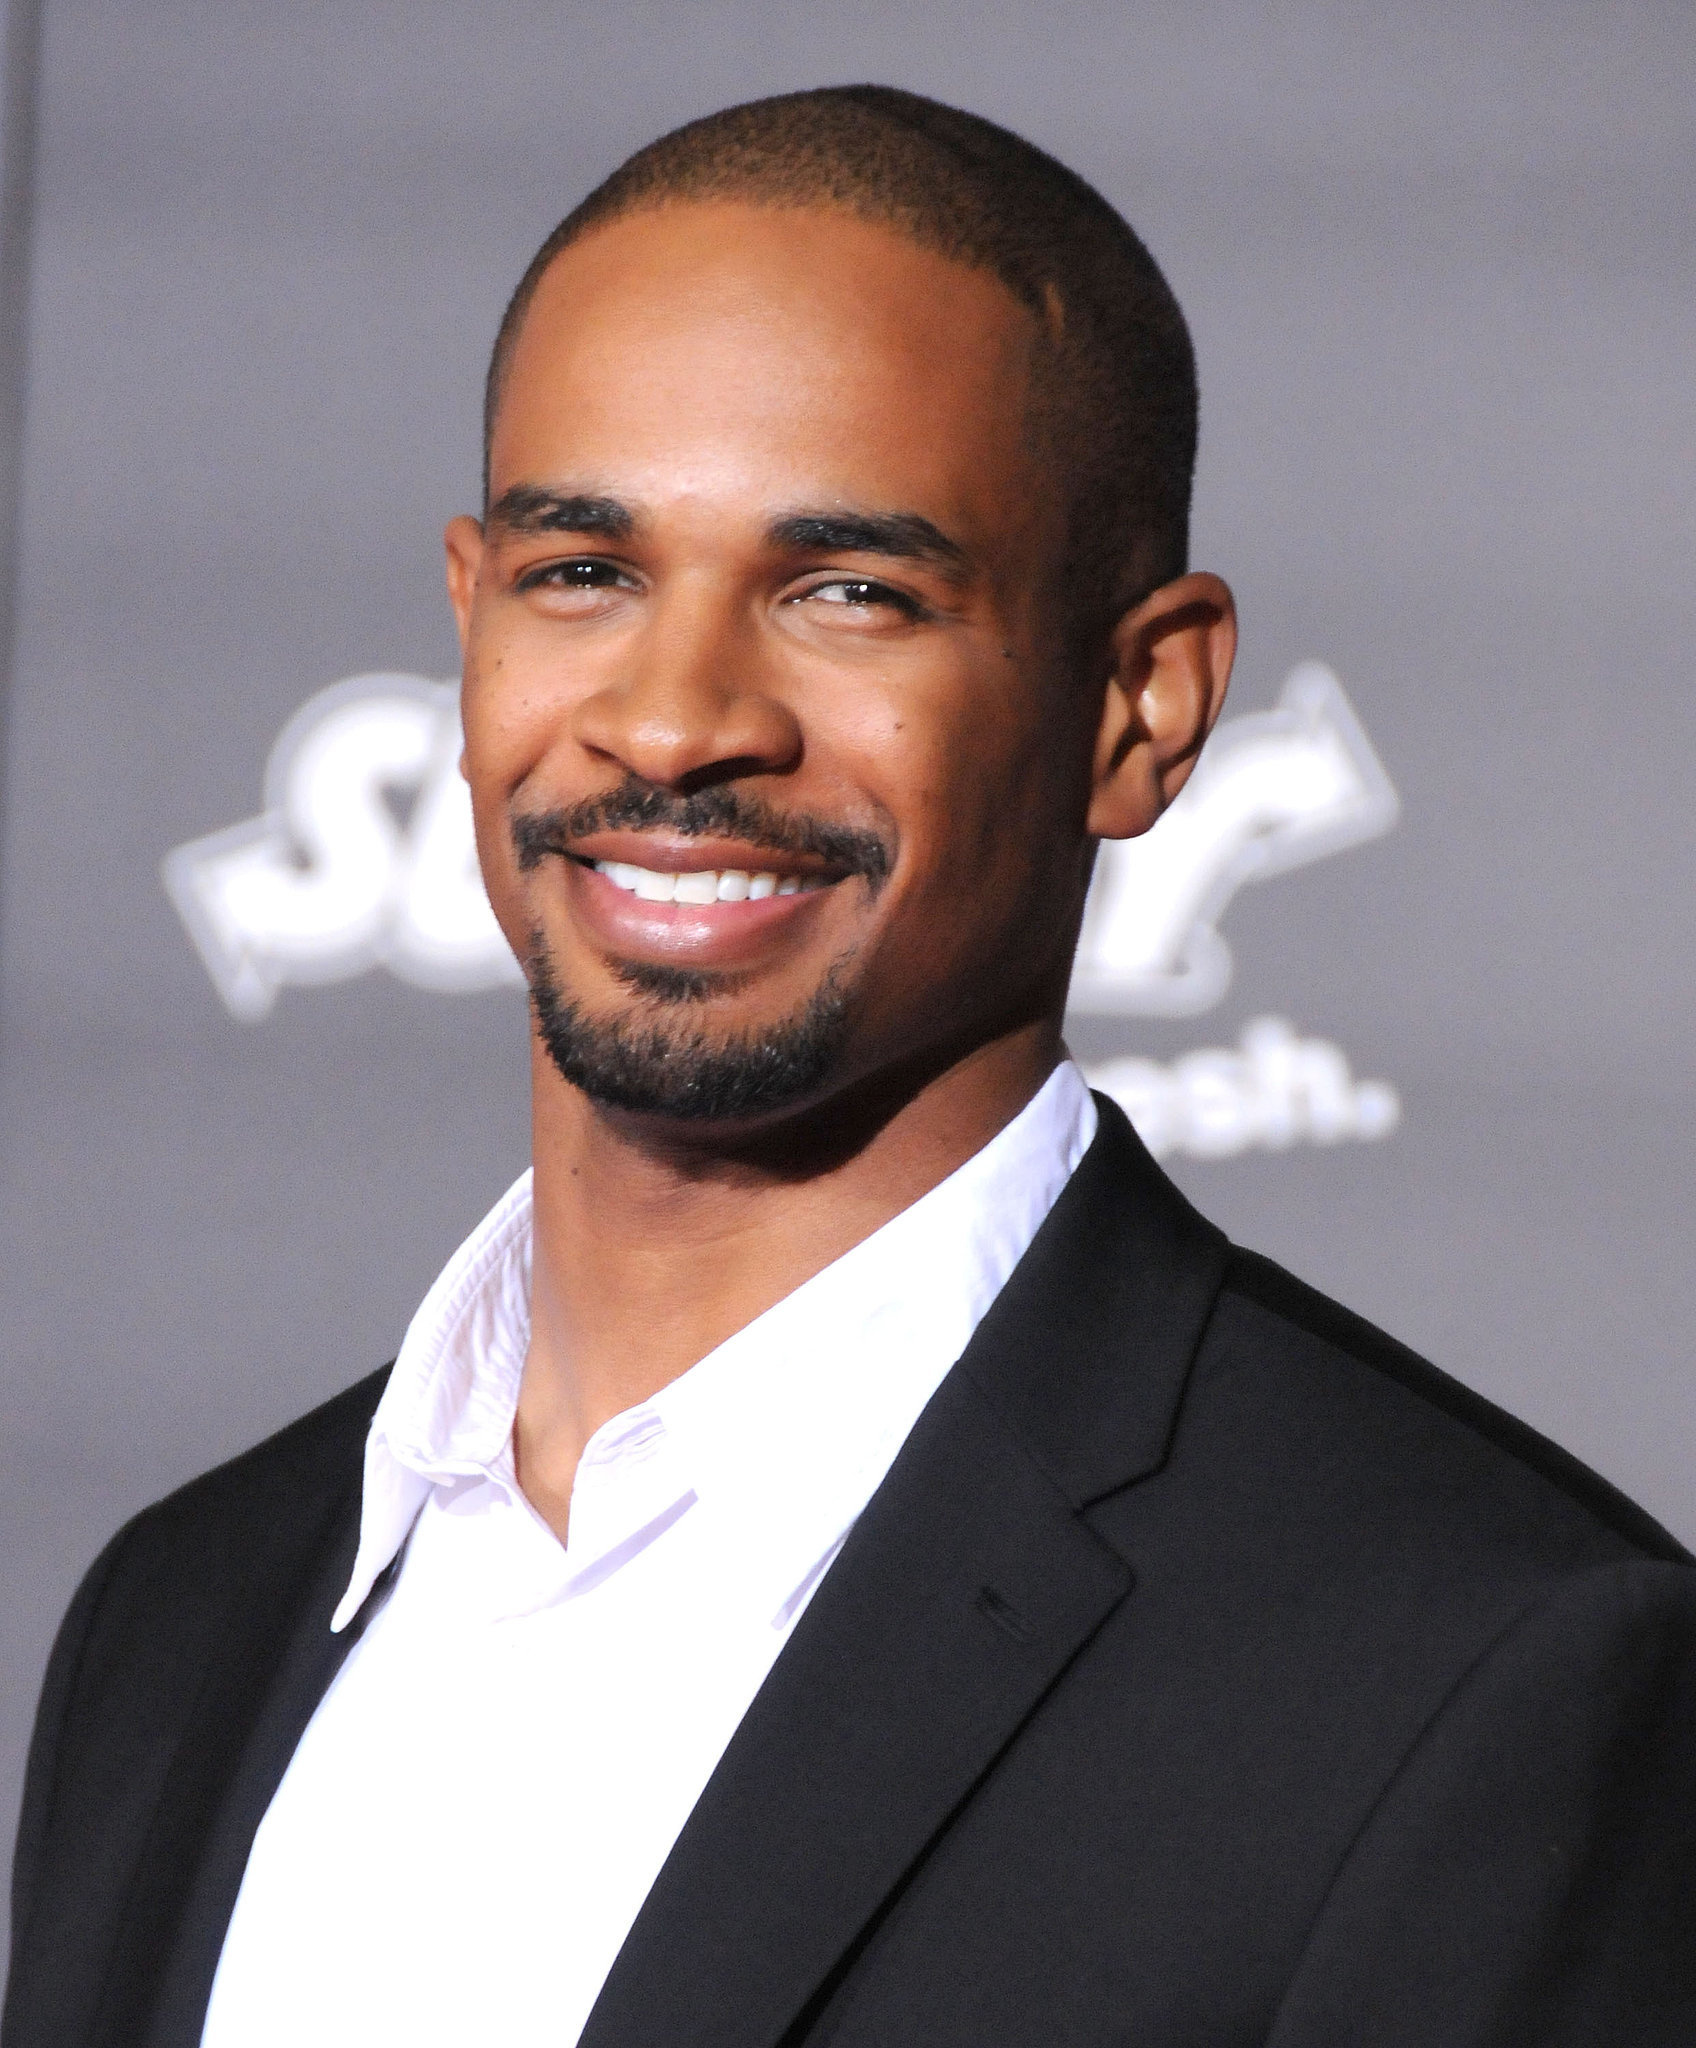 Damon Wayans, Jr. Damon Wayans Jr may come from